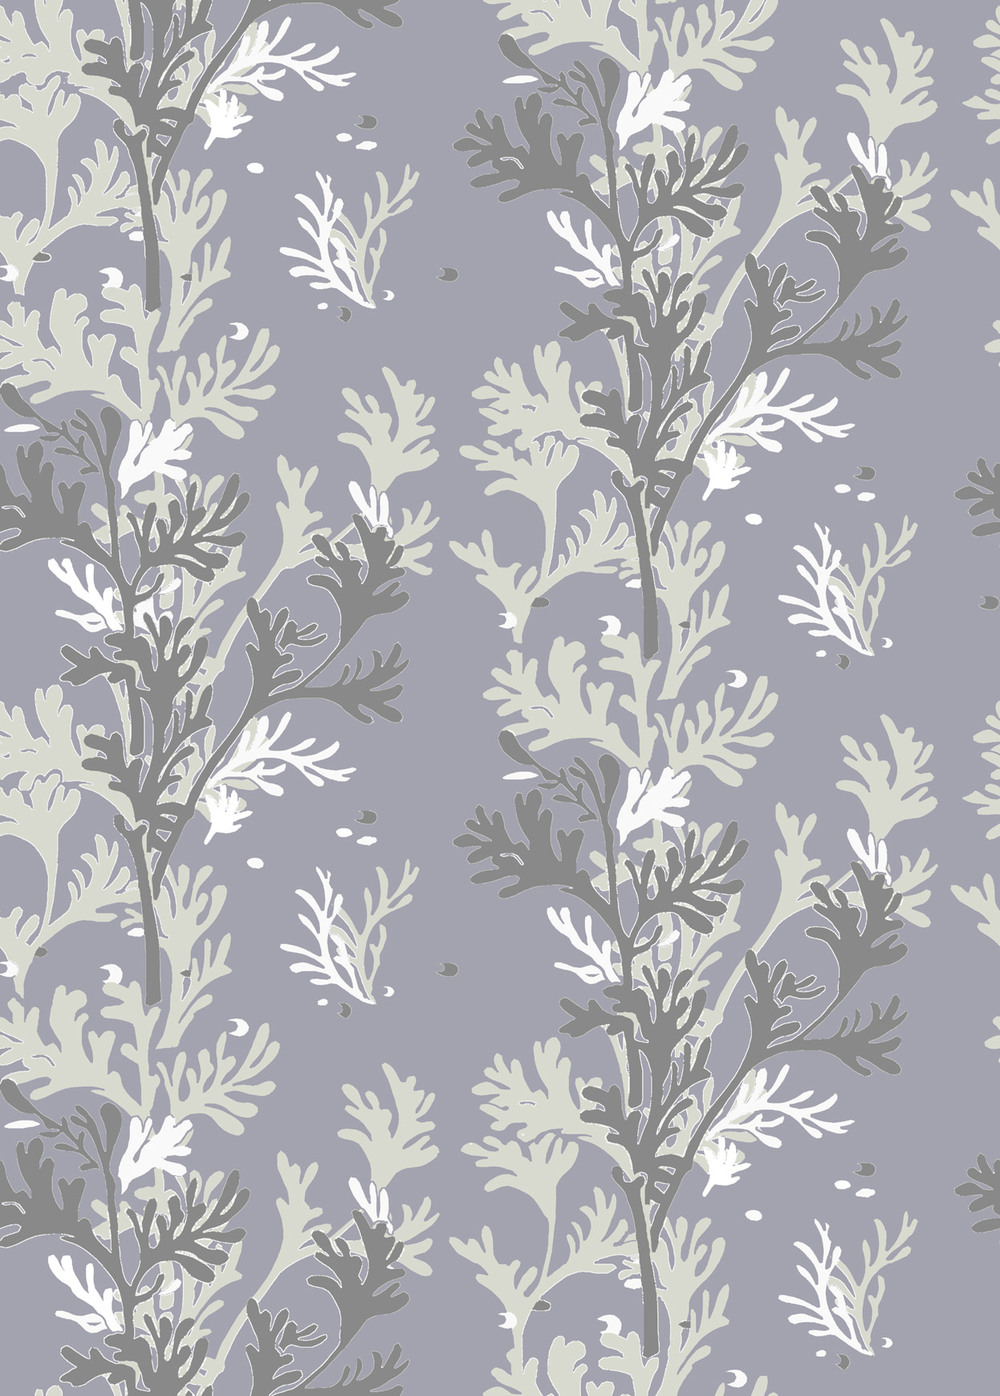 seaweed fabric grey.jpg